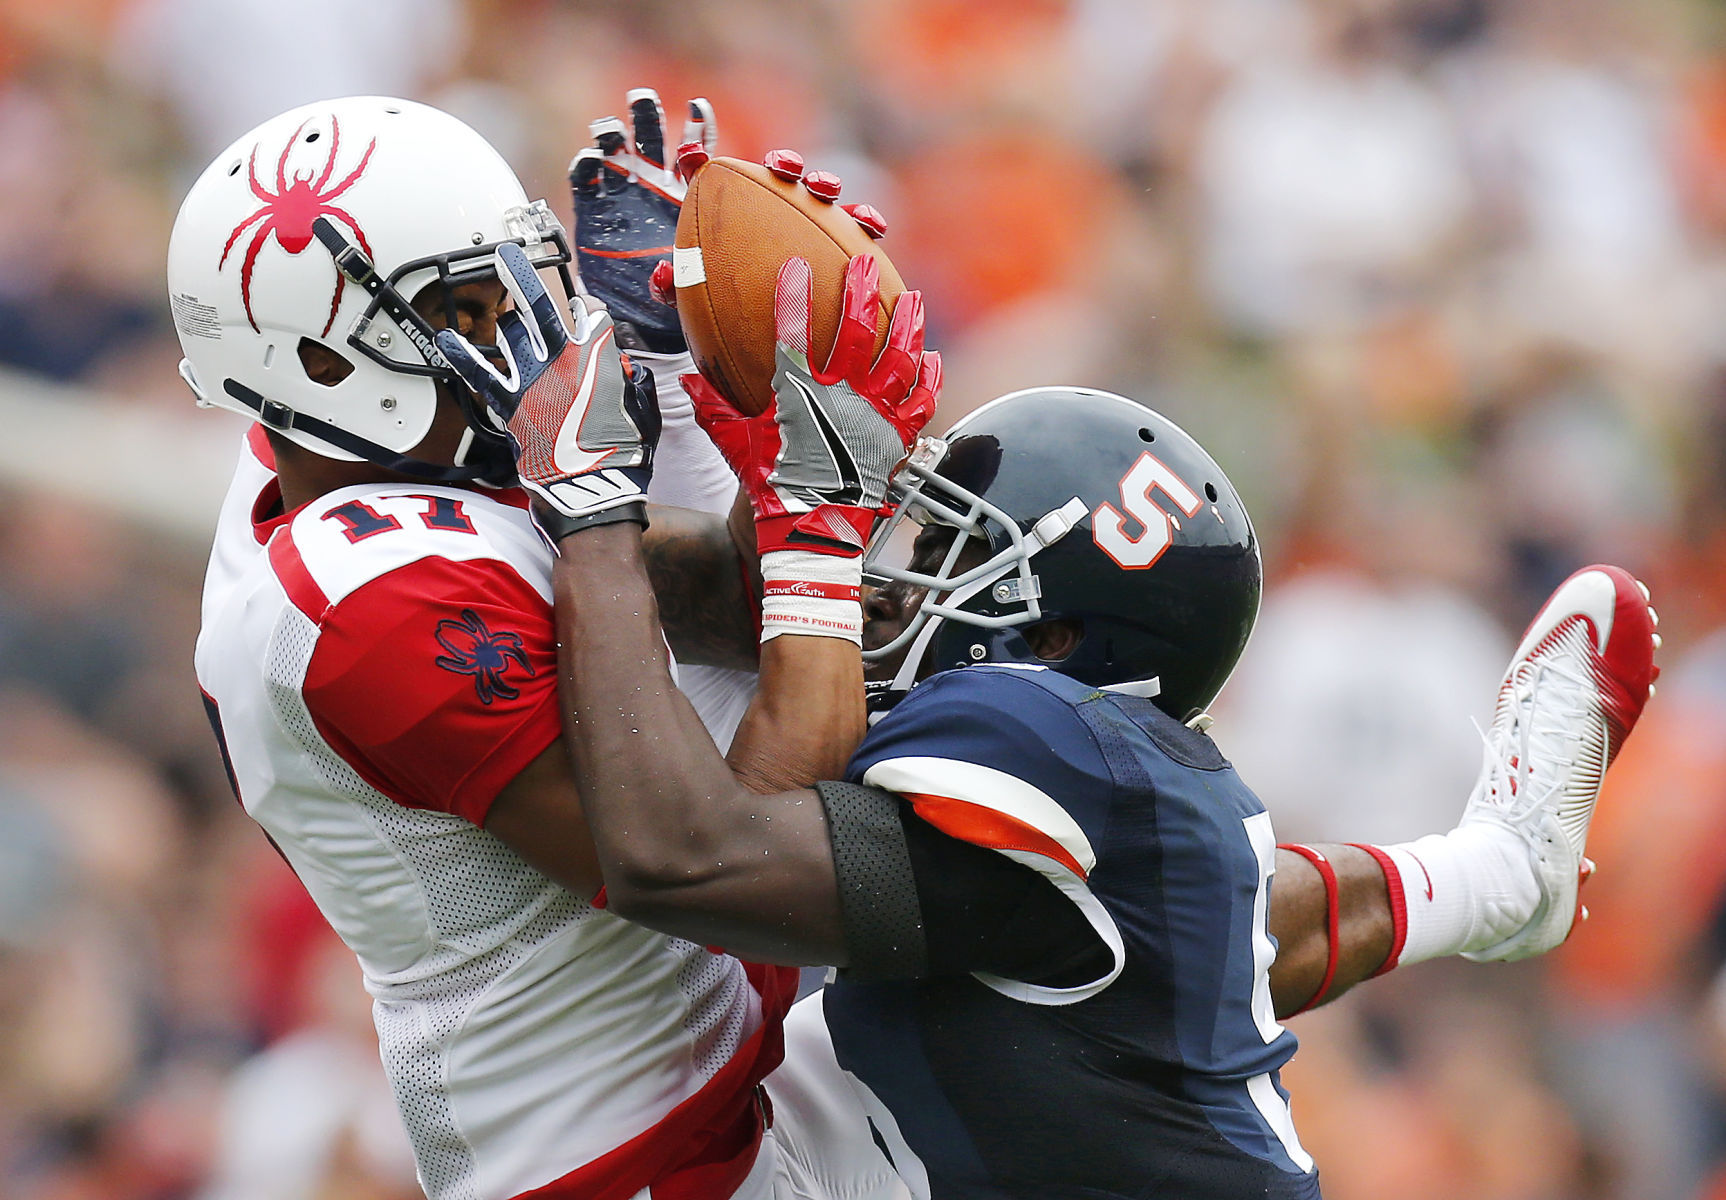 UVa CB Harris out for the season with wrist injury